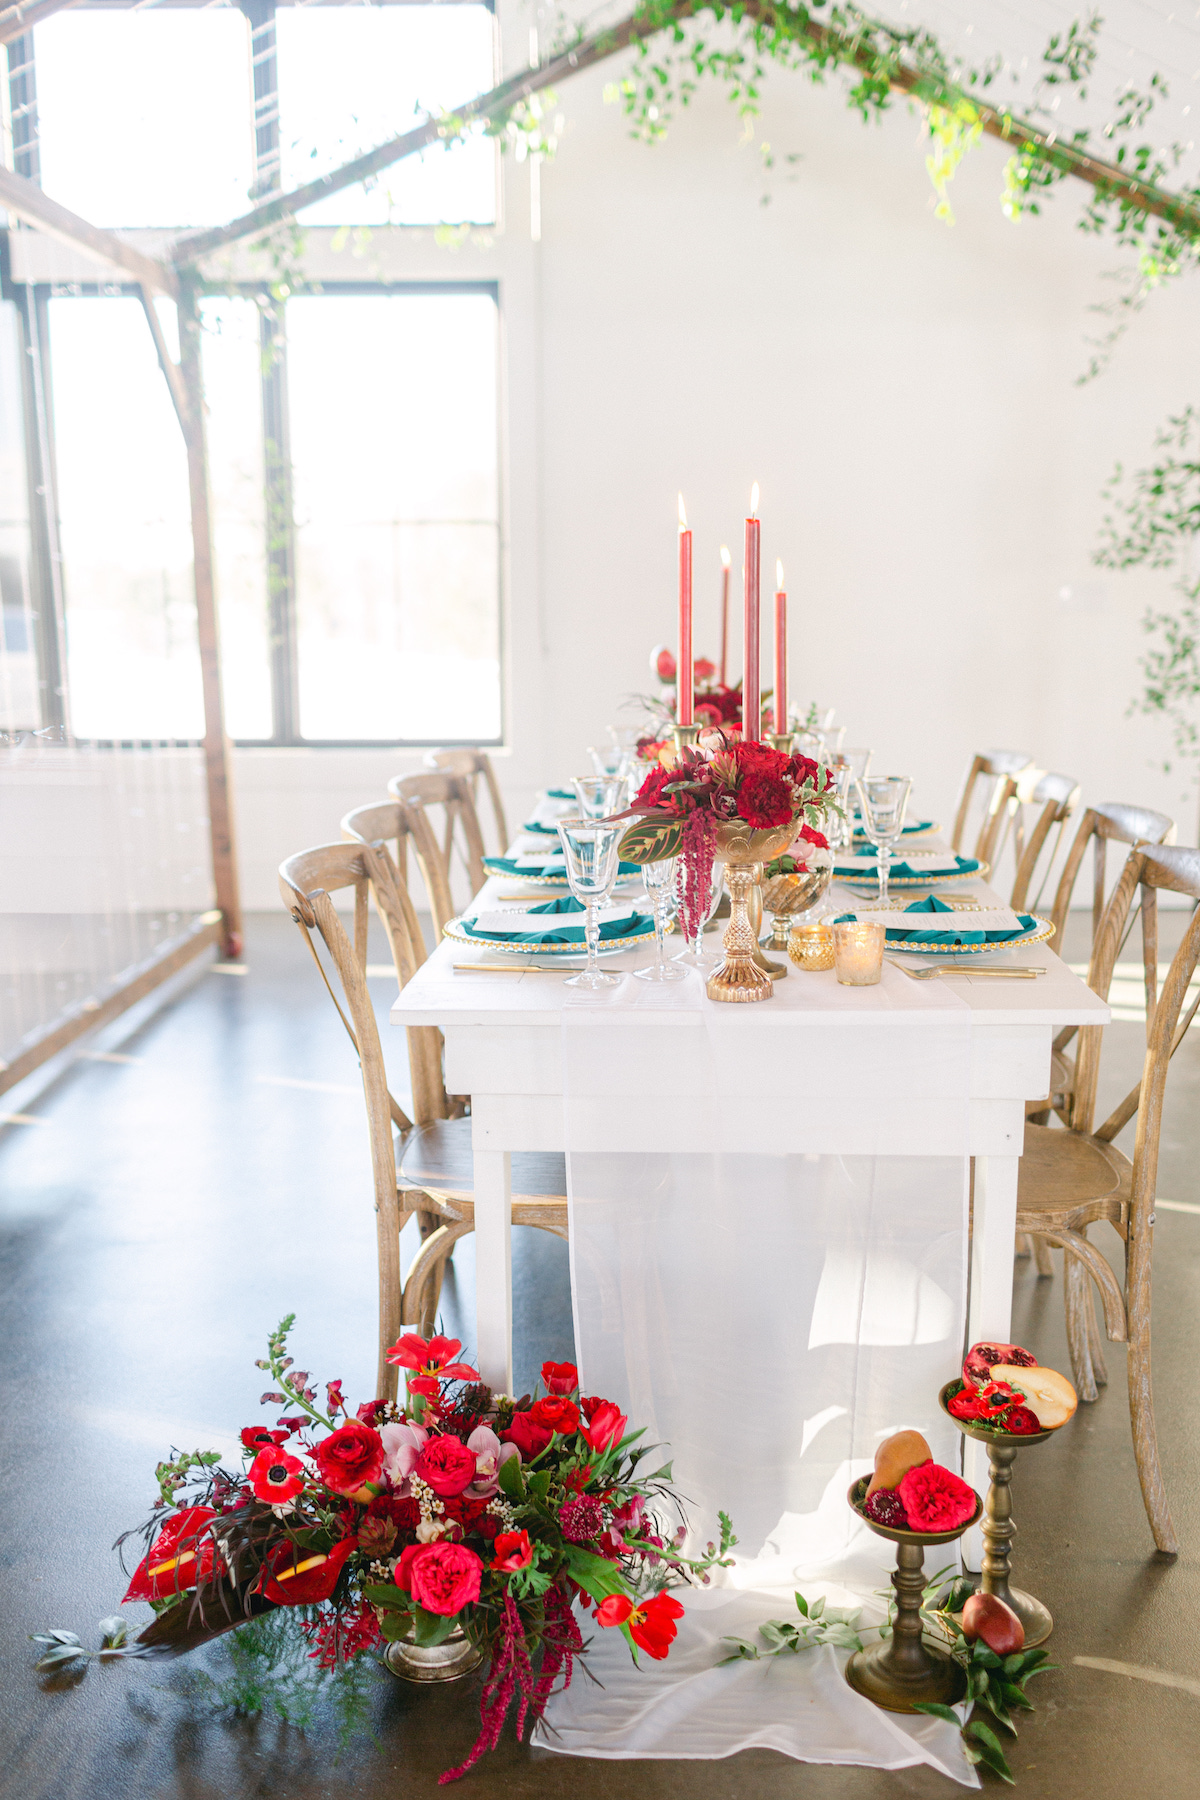 Winter wedding table colors - 5th Fine Art Photography